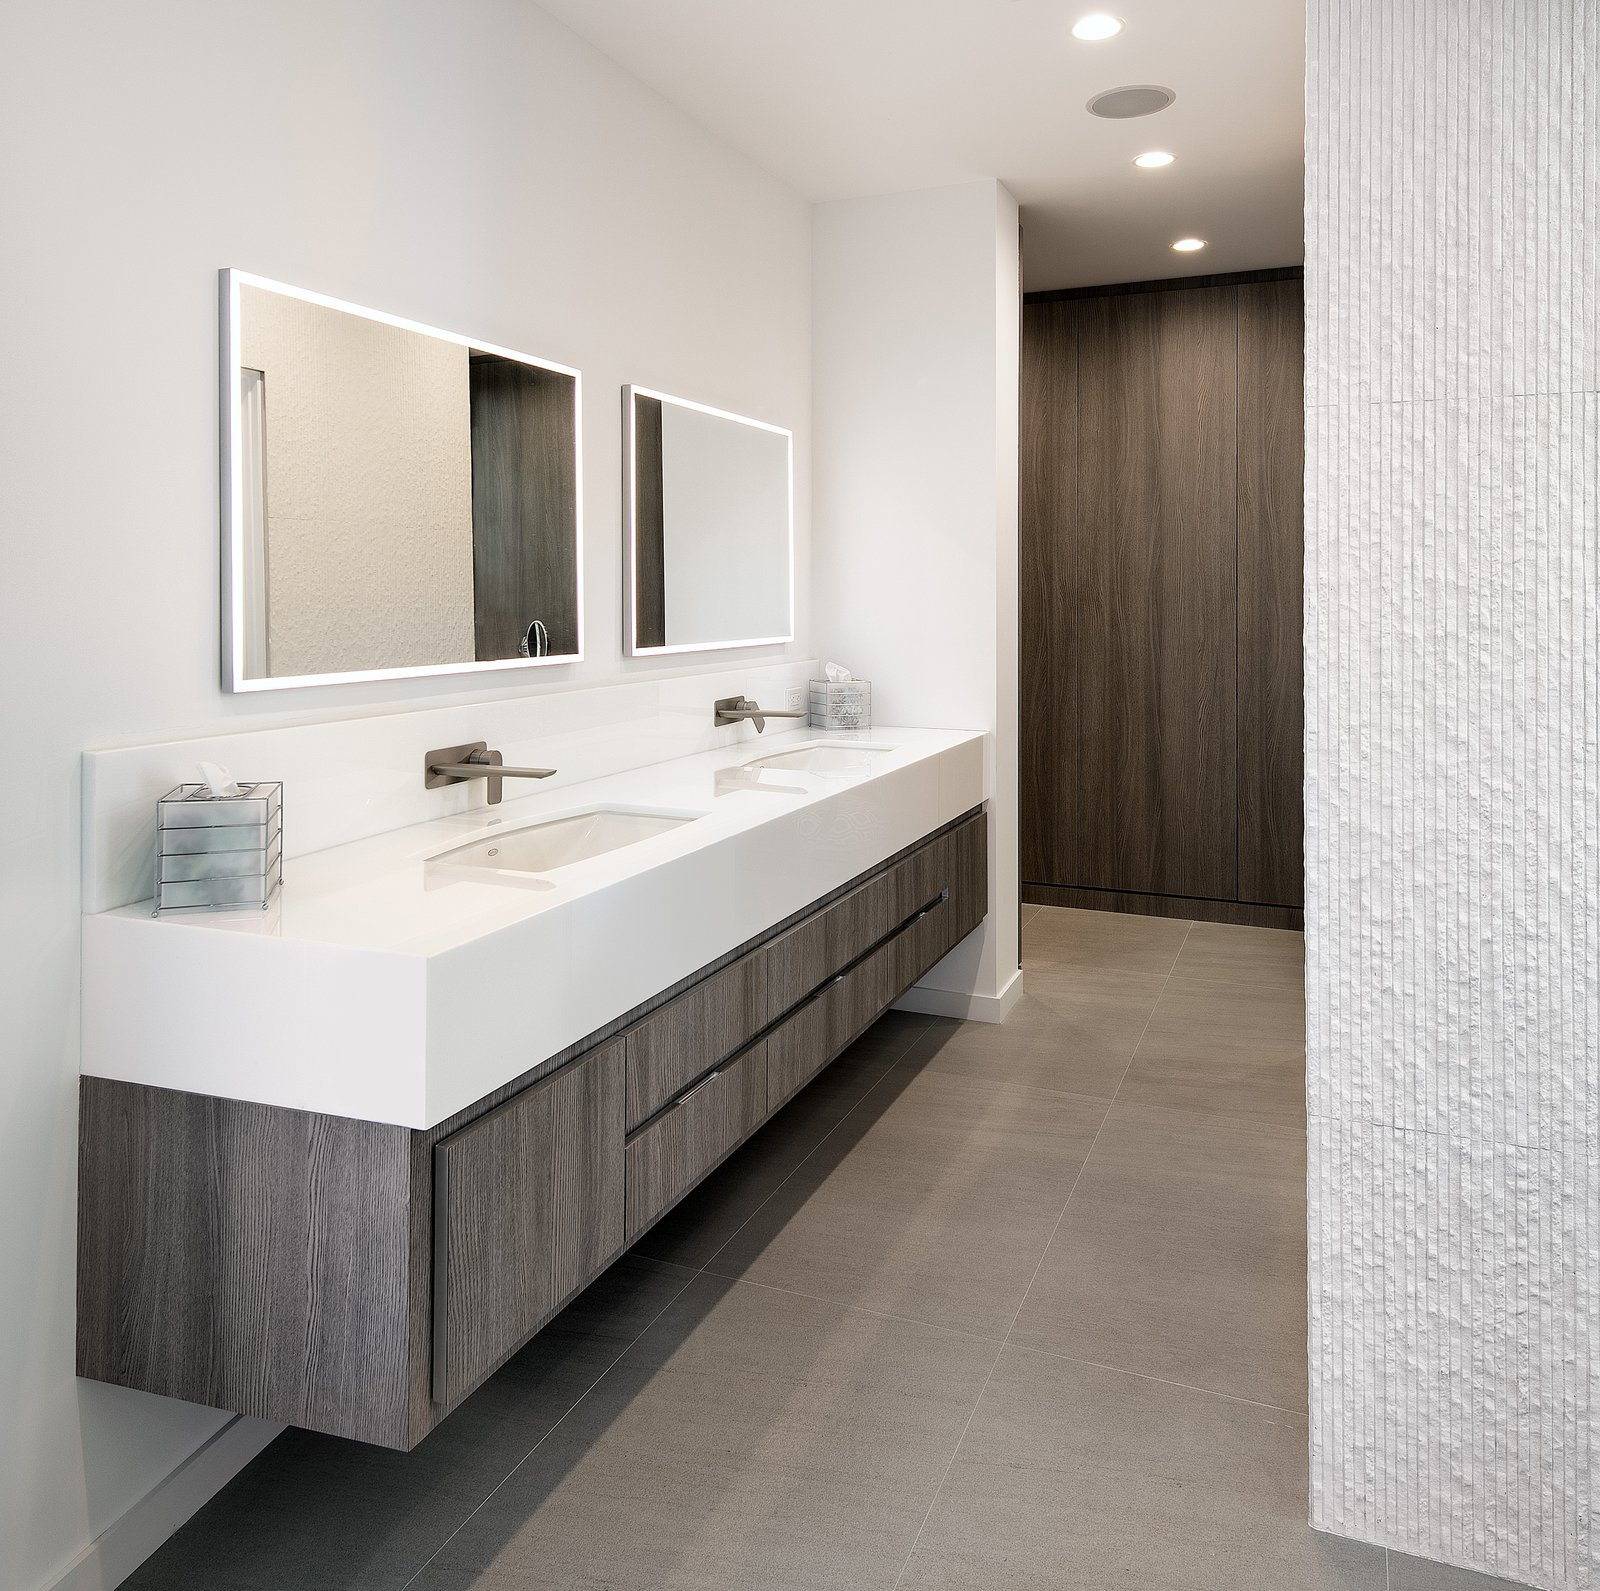 An accent wall with marble mosaic tile adds texture to the sleek bathroom.   Glenhaven Residence by Abramson Teiger Architects